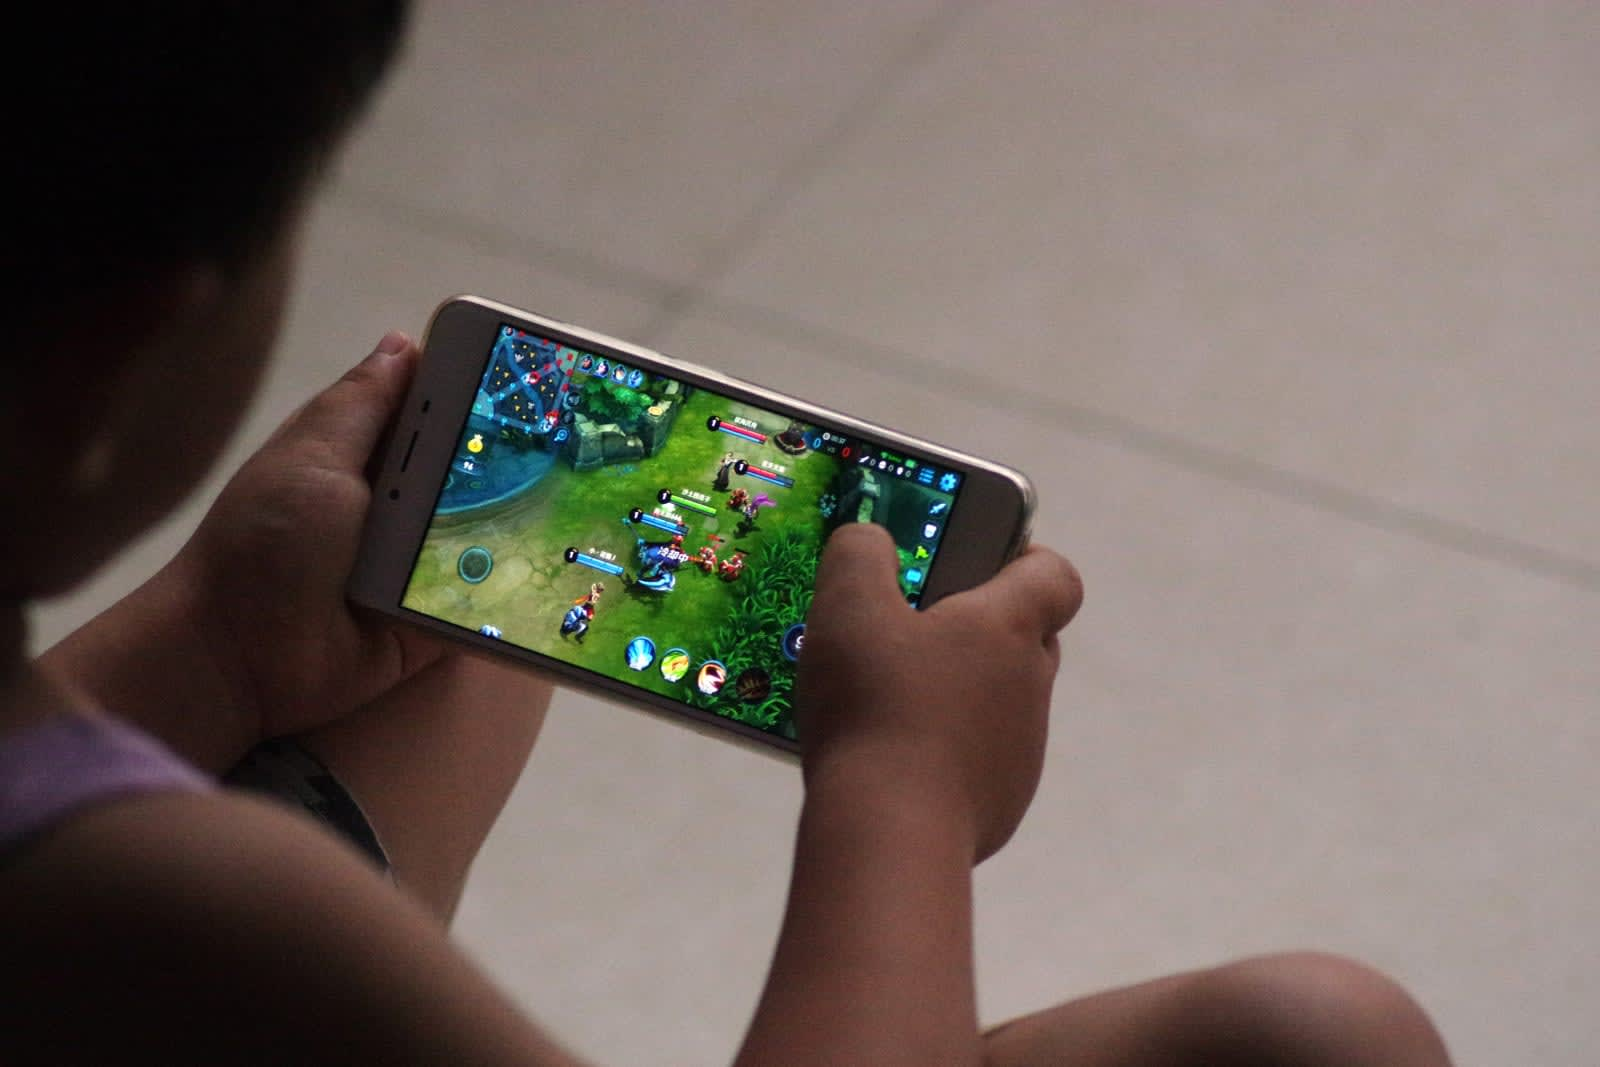 Tencent games will verify IDs to limit playing time for children